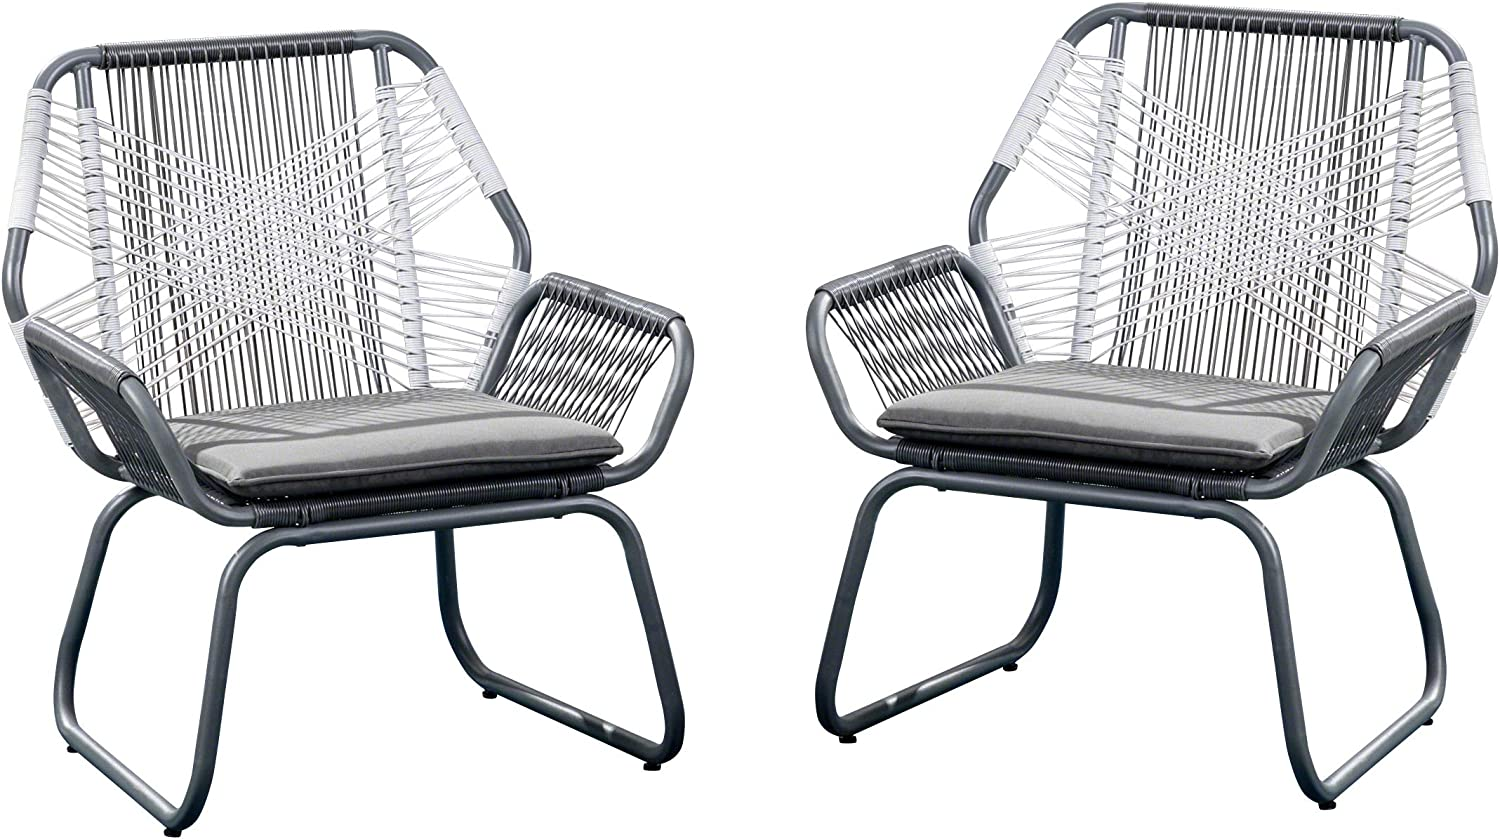 Christopher Knight Home 305086 Lydia Outdoor Wicker Club Chair (Set of 2), Gray/White/Gray : Garden & Outdoor